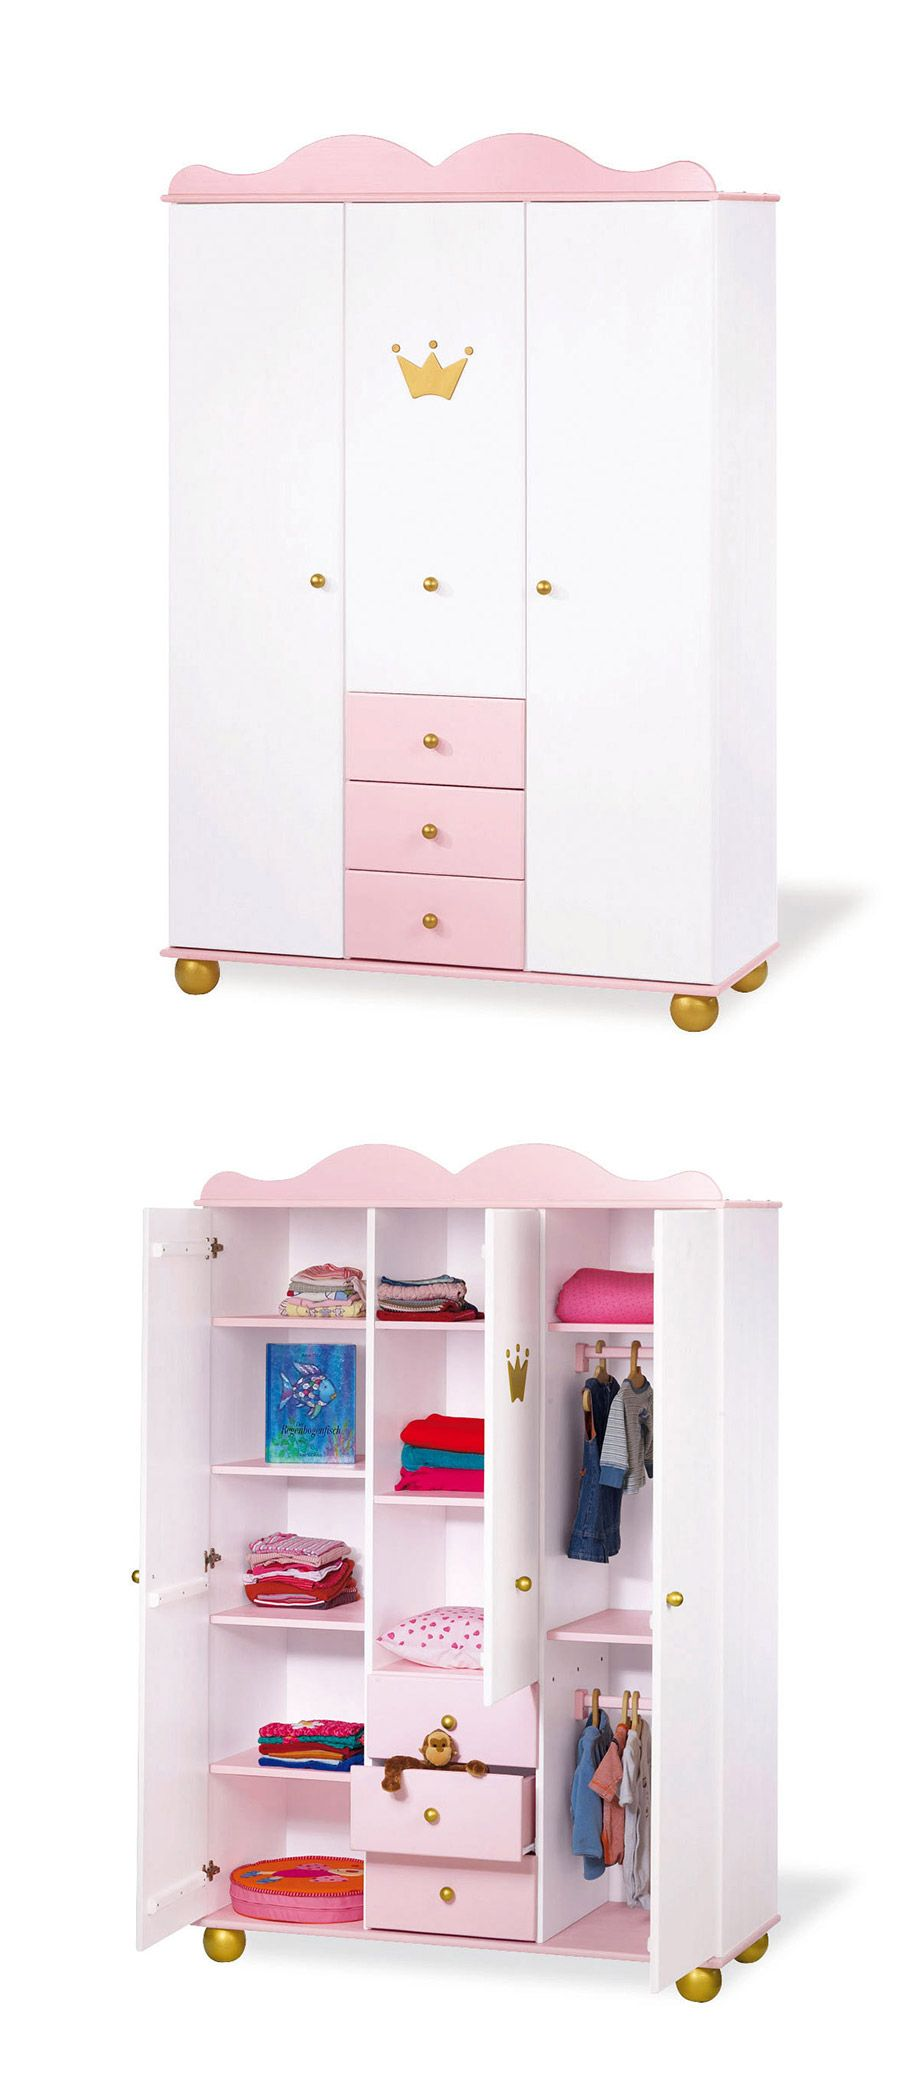 kleiderschrank prinzessin karolin rosa prinzessin. Black Bedroom Furniture Sets. Home Design Ideas